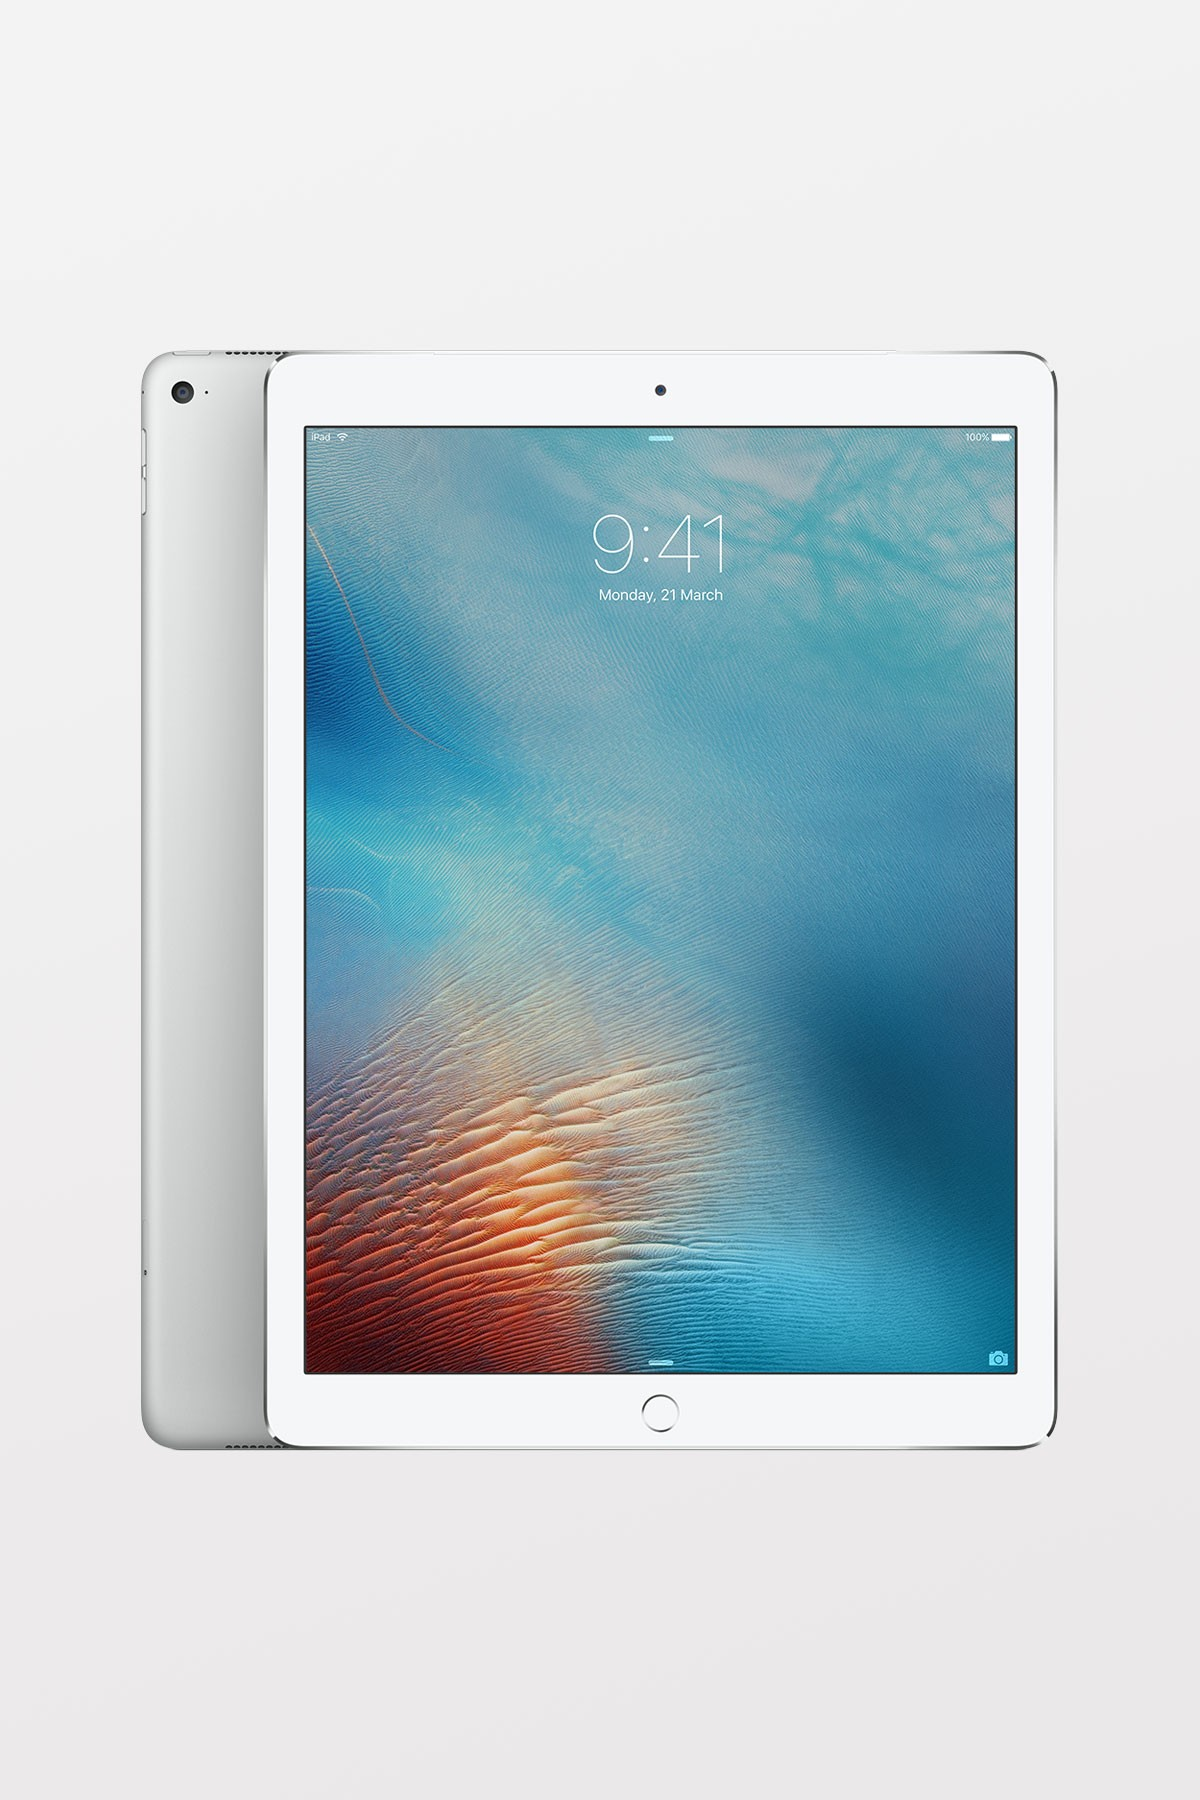 Apple iPad Pro 12.9-inch Wi-Fi + Cellular 64GB - Silver